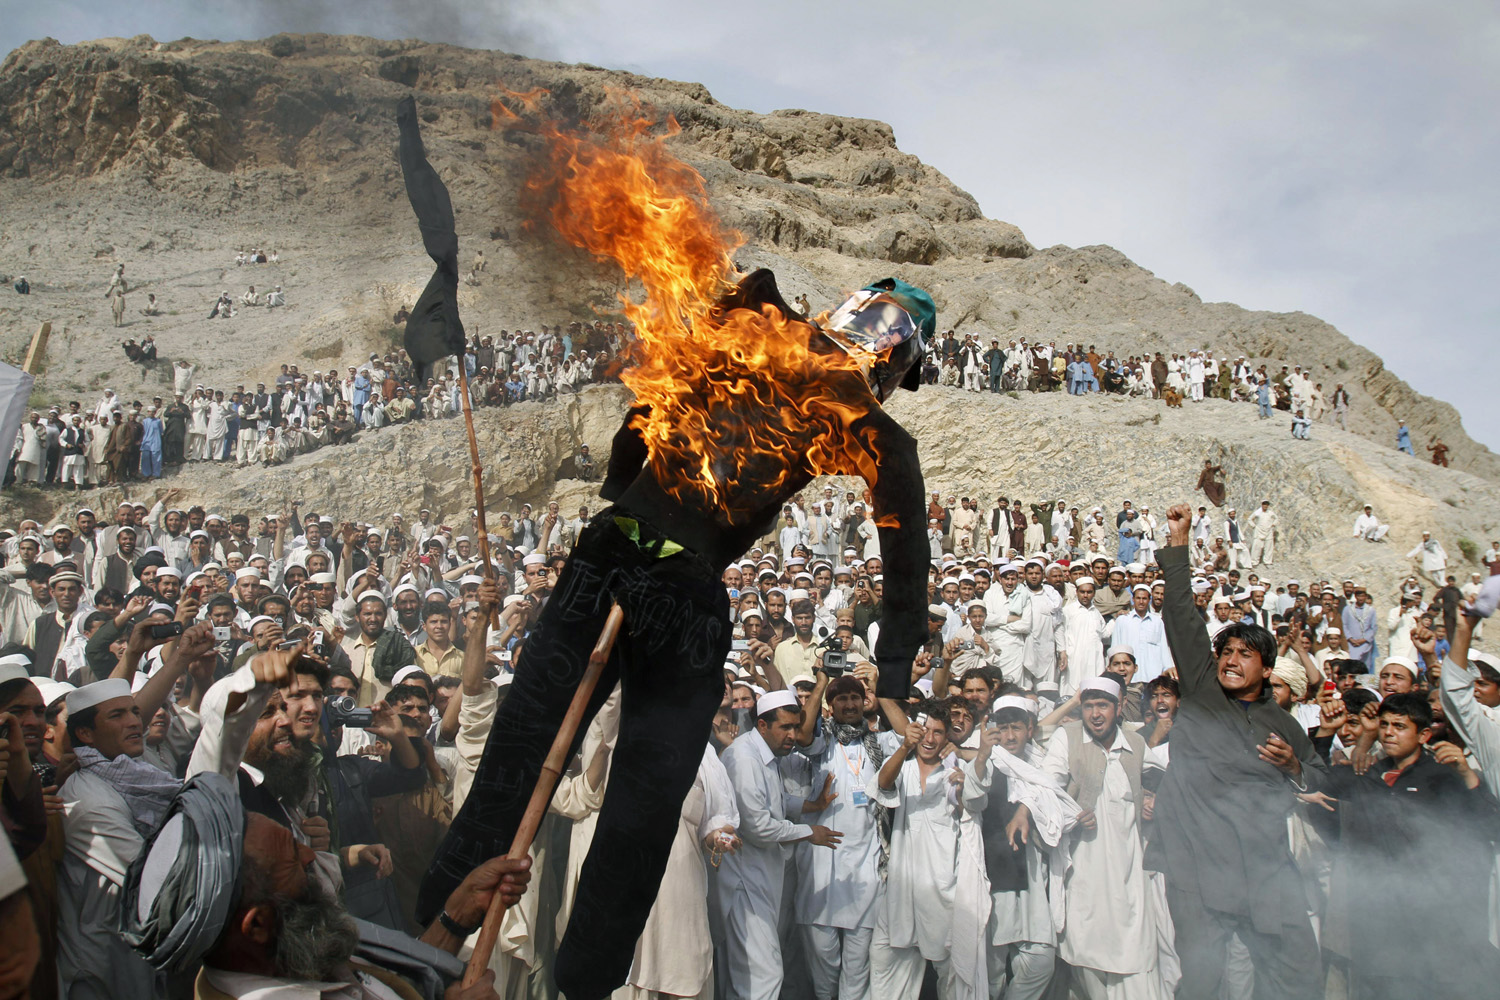 April 4, 2011. An Afghan protester holds a burning effigy of the American pastor, Terry Jones, during a demonstration in Shinwar, Nangarhar province, east of Kabul, Afghanistan.